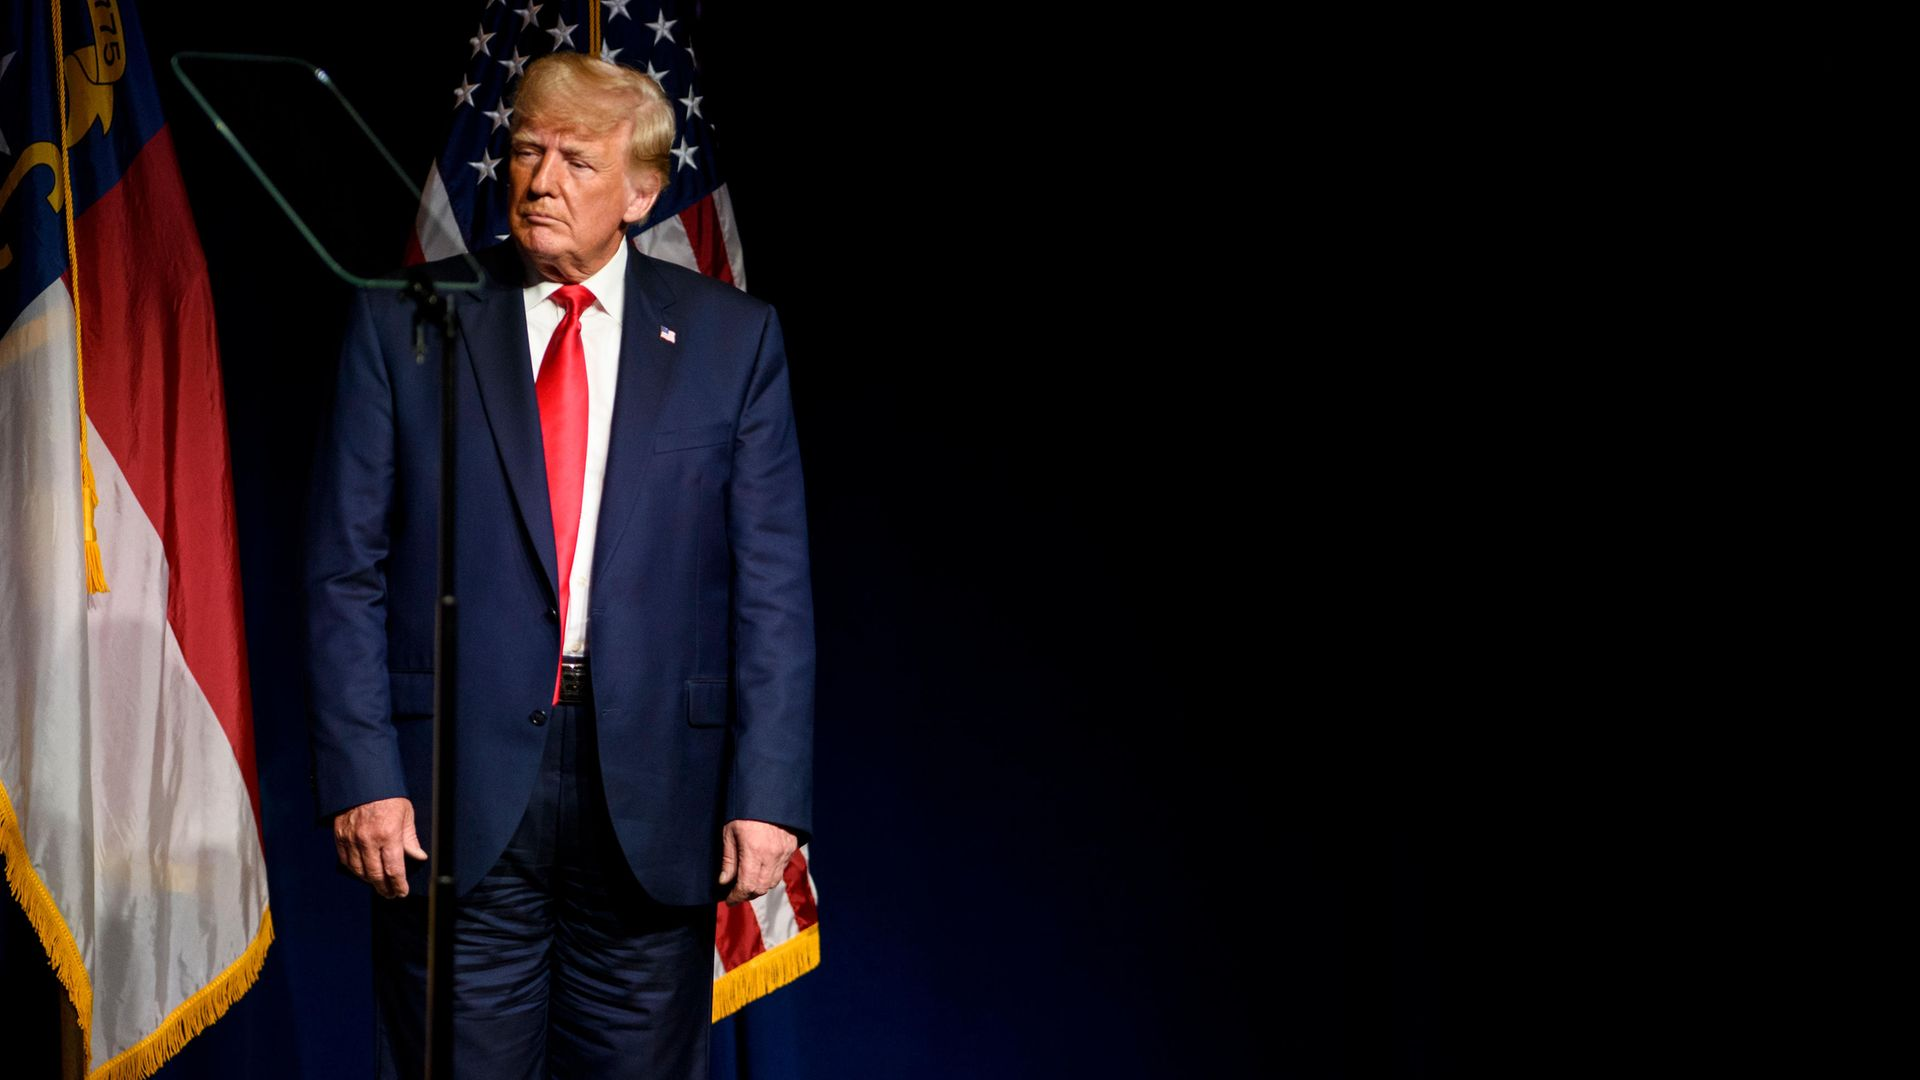 Former U.S. president Donald Trump appears to be wearing his trousers back-to-front at the Republicans' North Carolina state convention on June 5, 2021 in Greenville, North Carolina. - Credit: Photo by Melissa Sue Gerrits/Getty Images